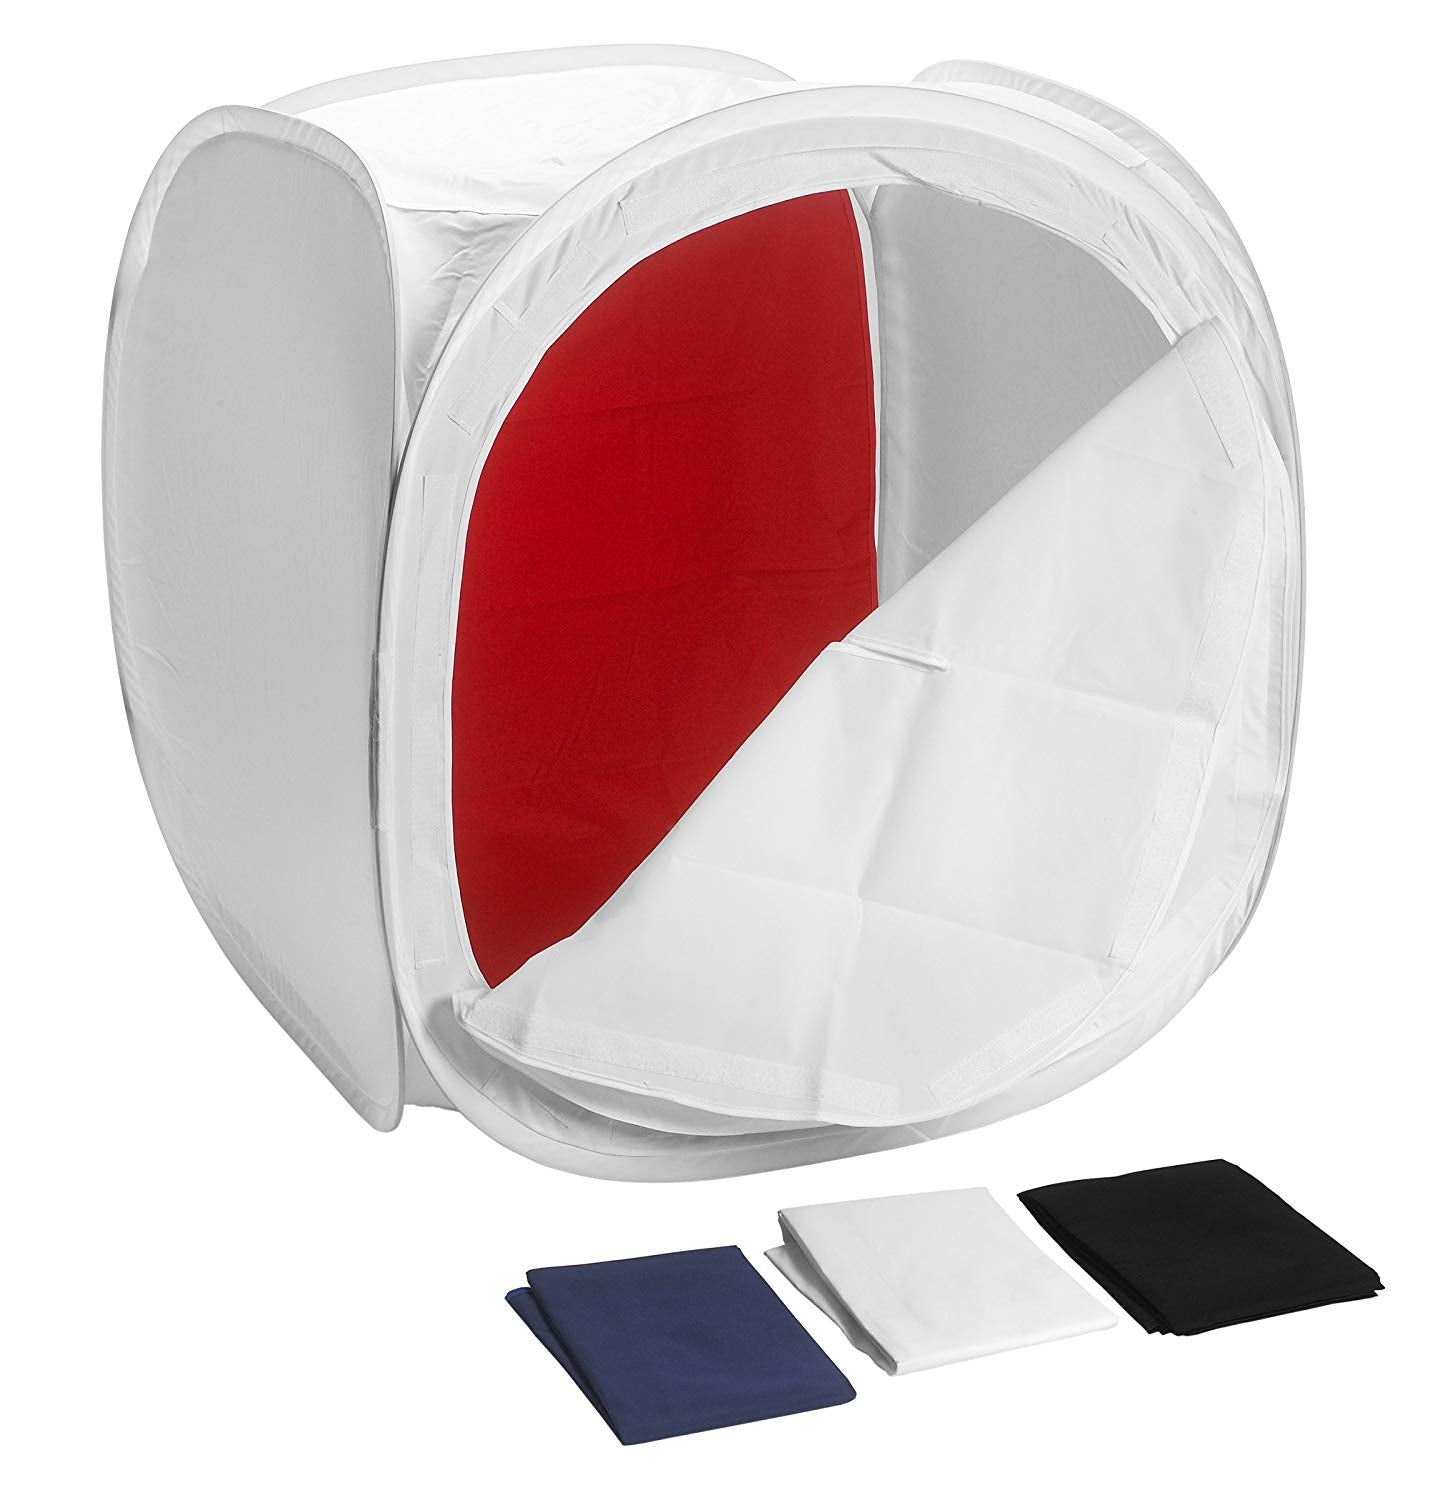 STUDIO PRODUCT PHOTOGRAPHY FOLDABLE LIGHT TENT BOX 80x80x80 cm